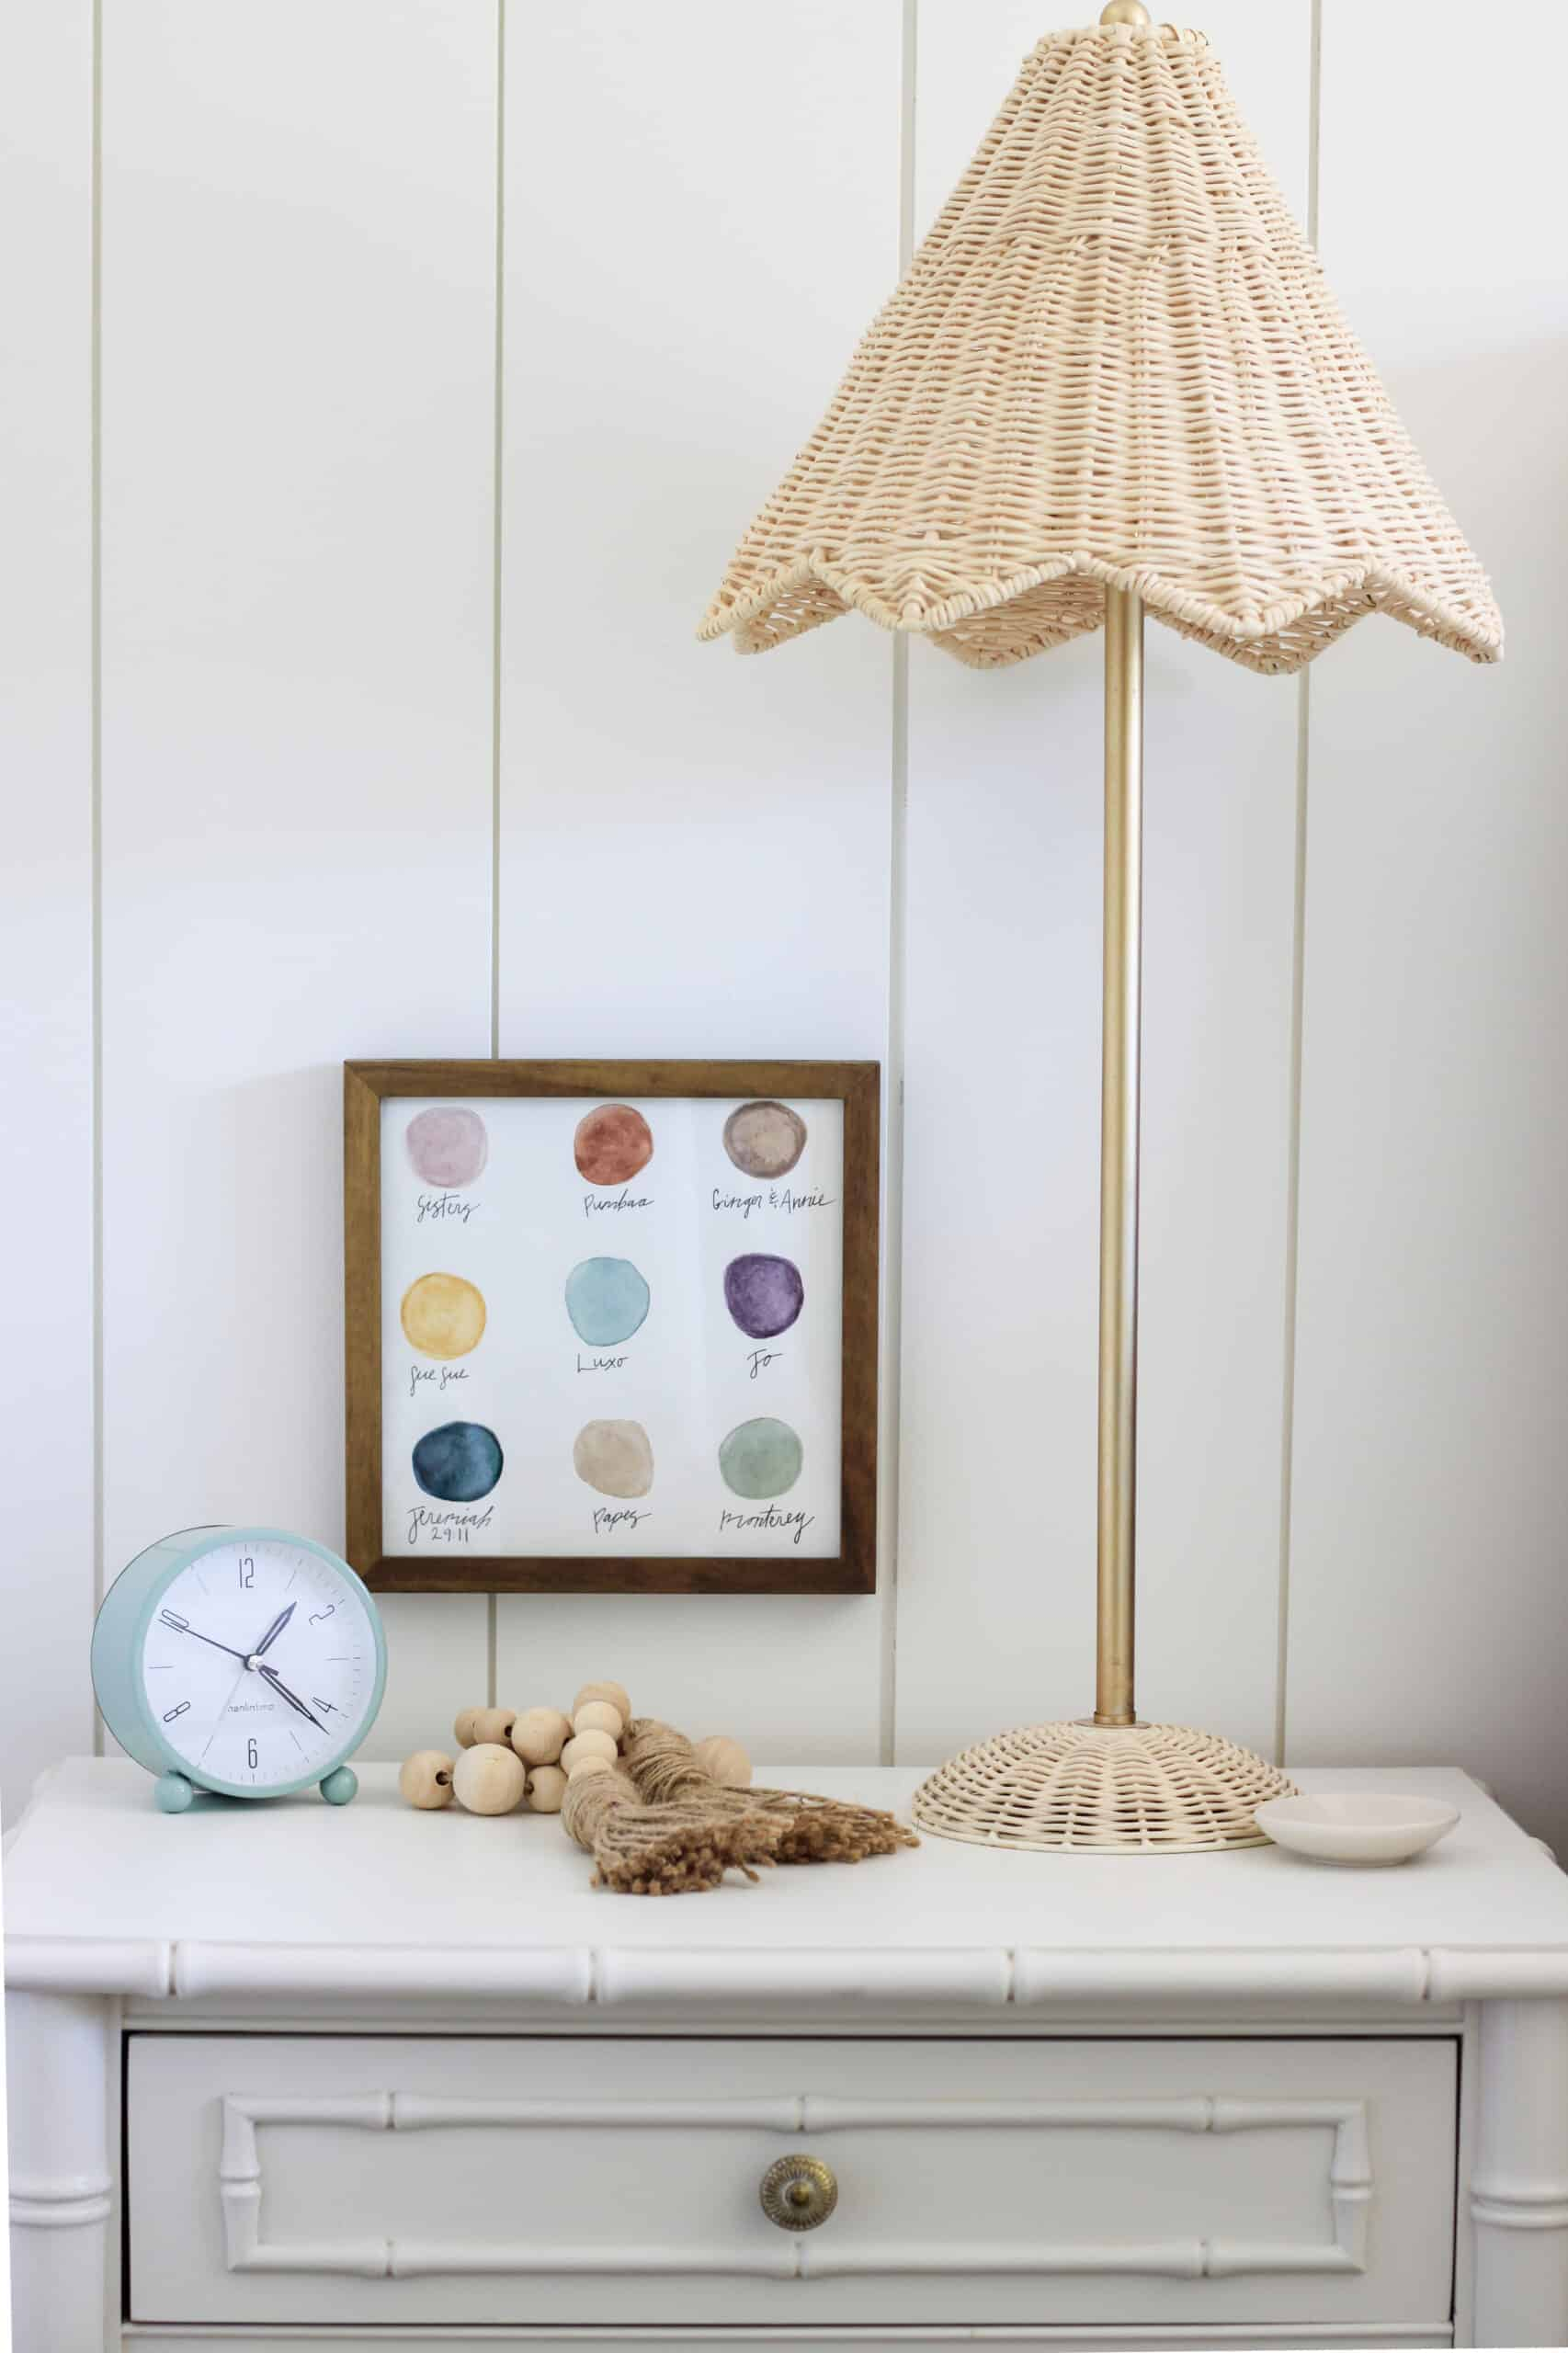 rattan lamp, artwork with colored dots, small mint alarm clock